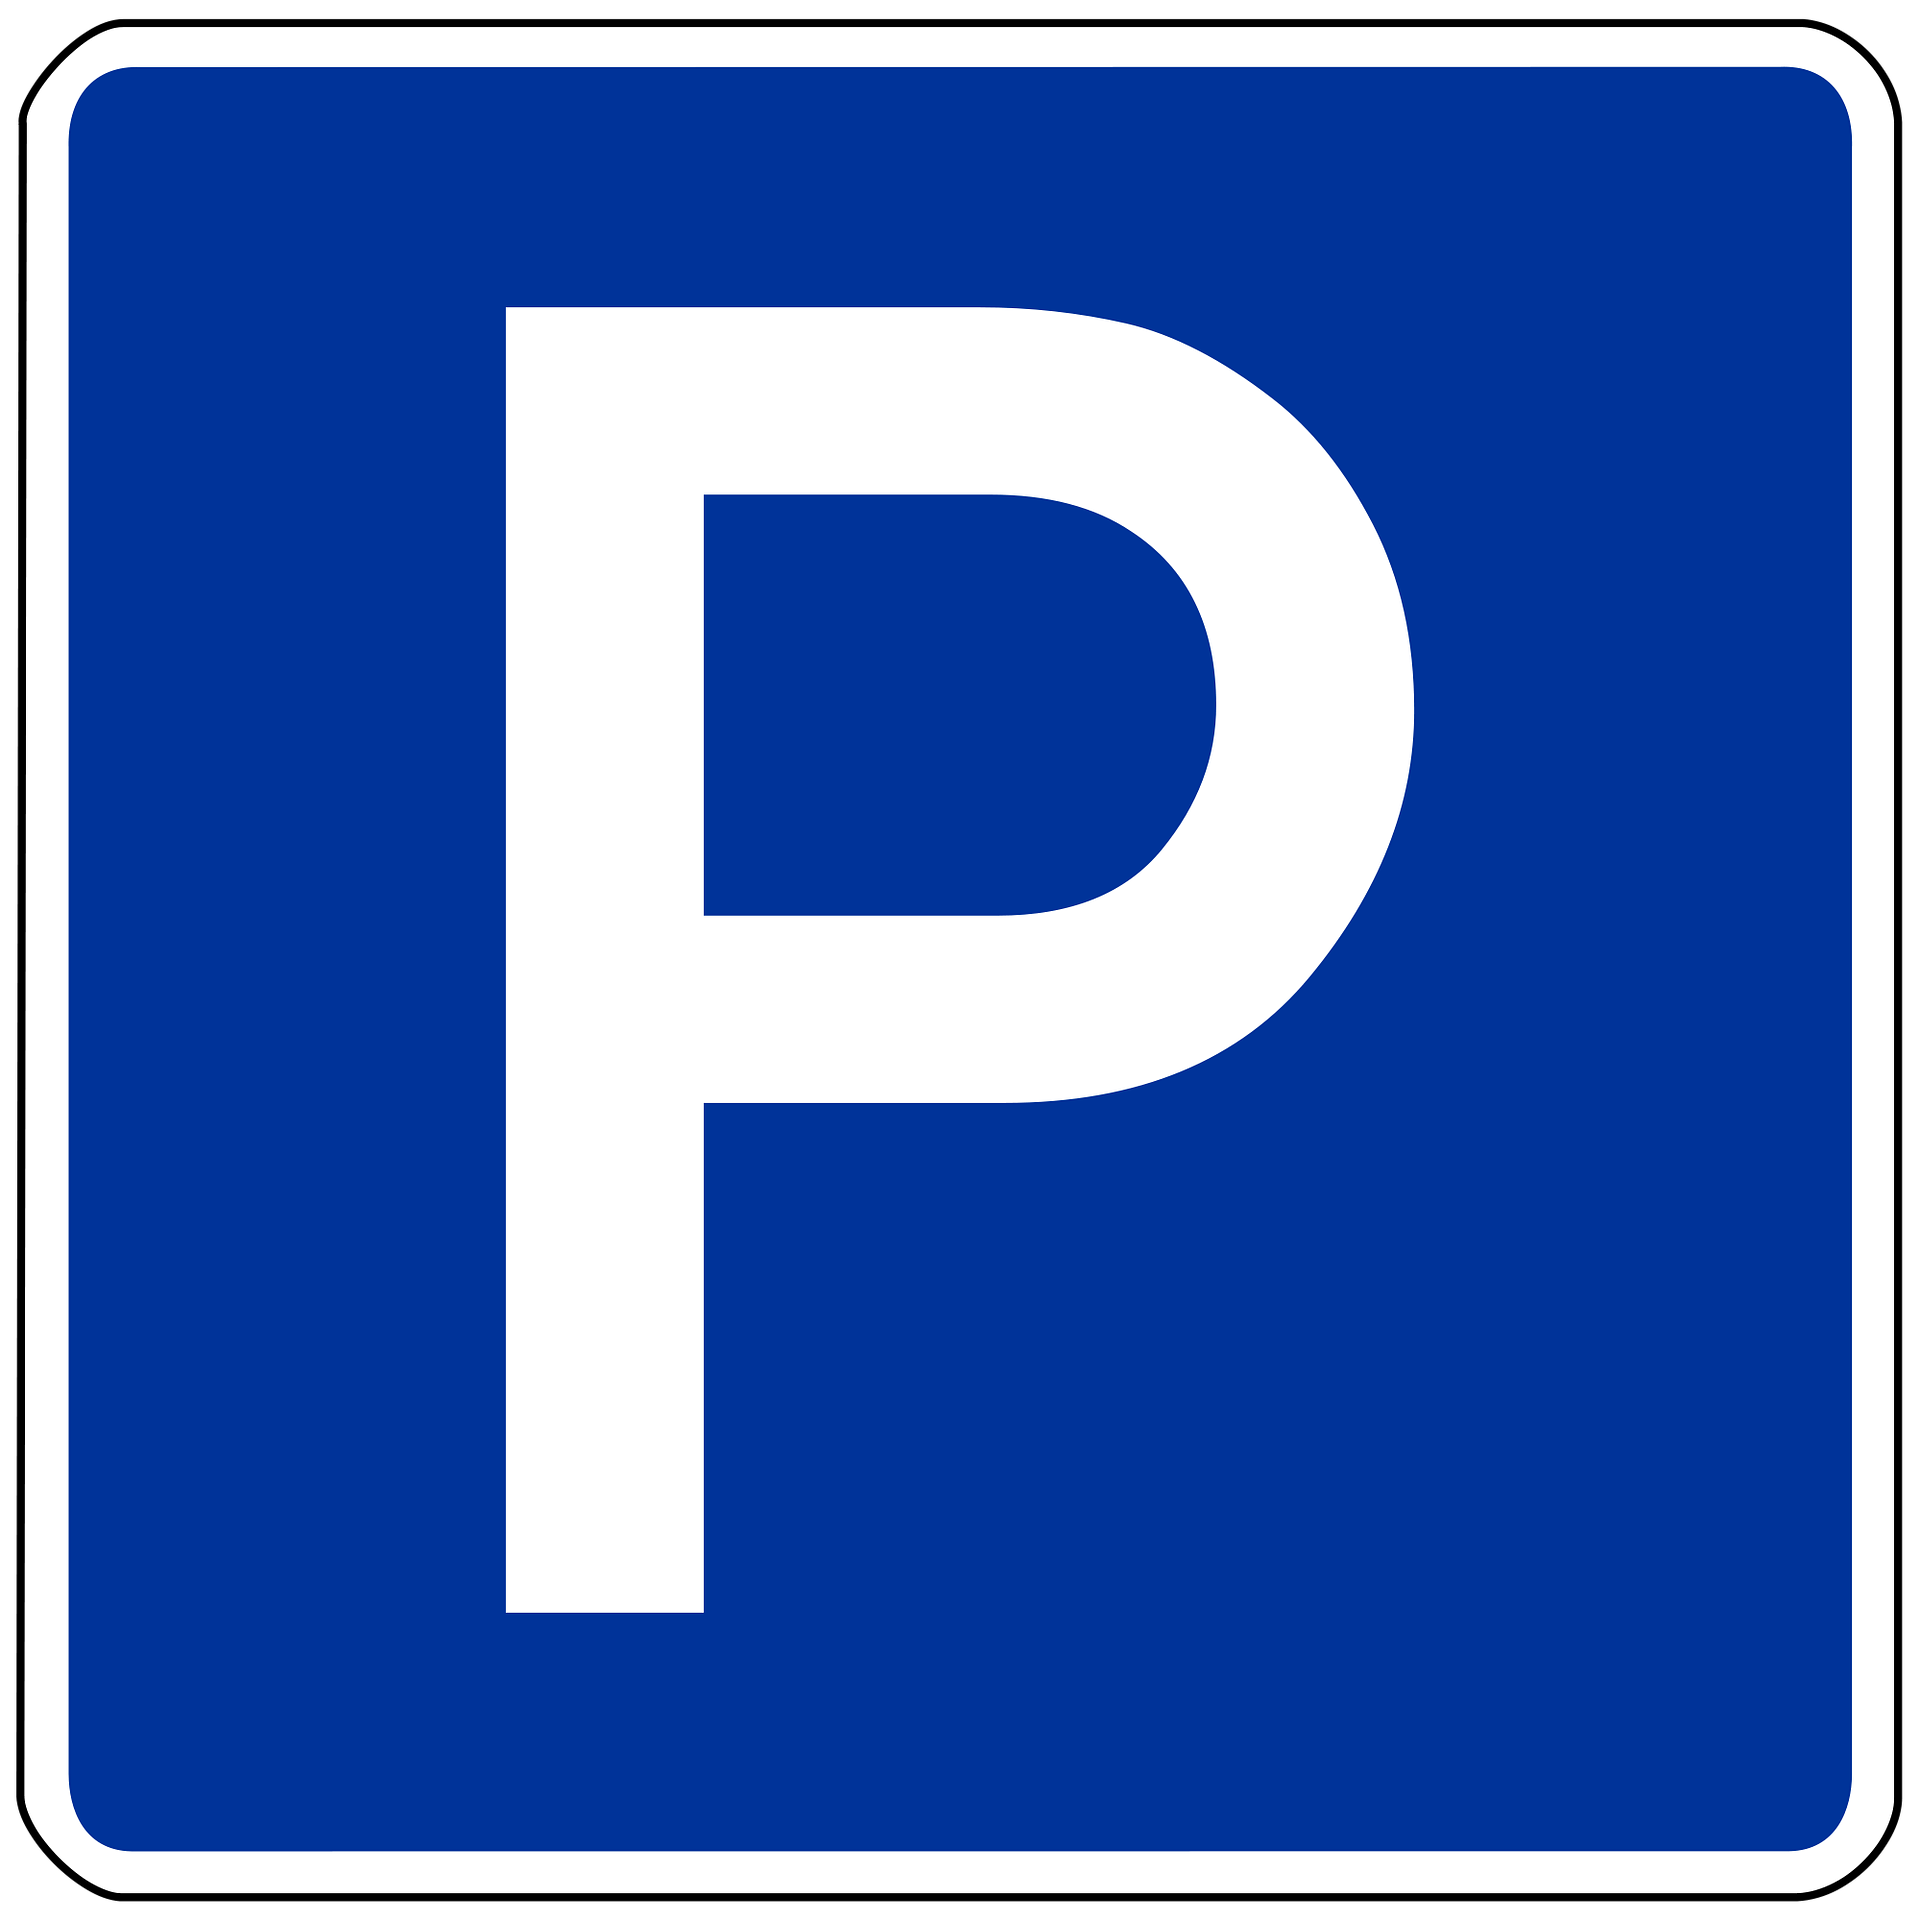 Click here to read more on the Library's public parking policy and guidelines